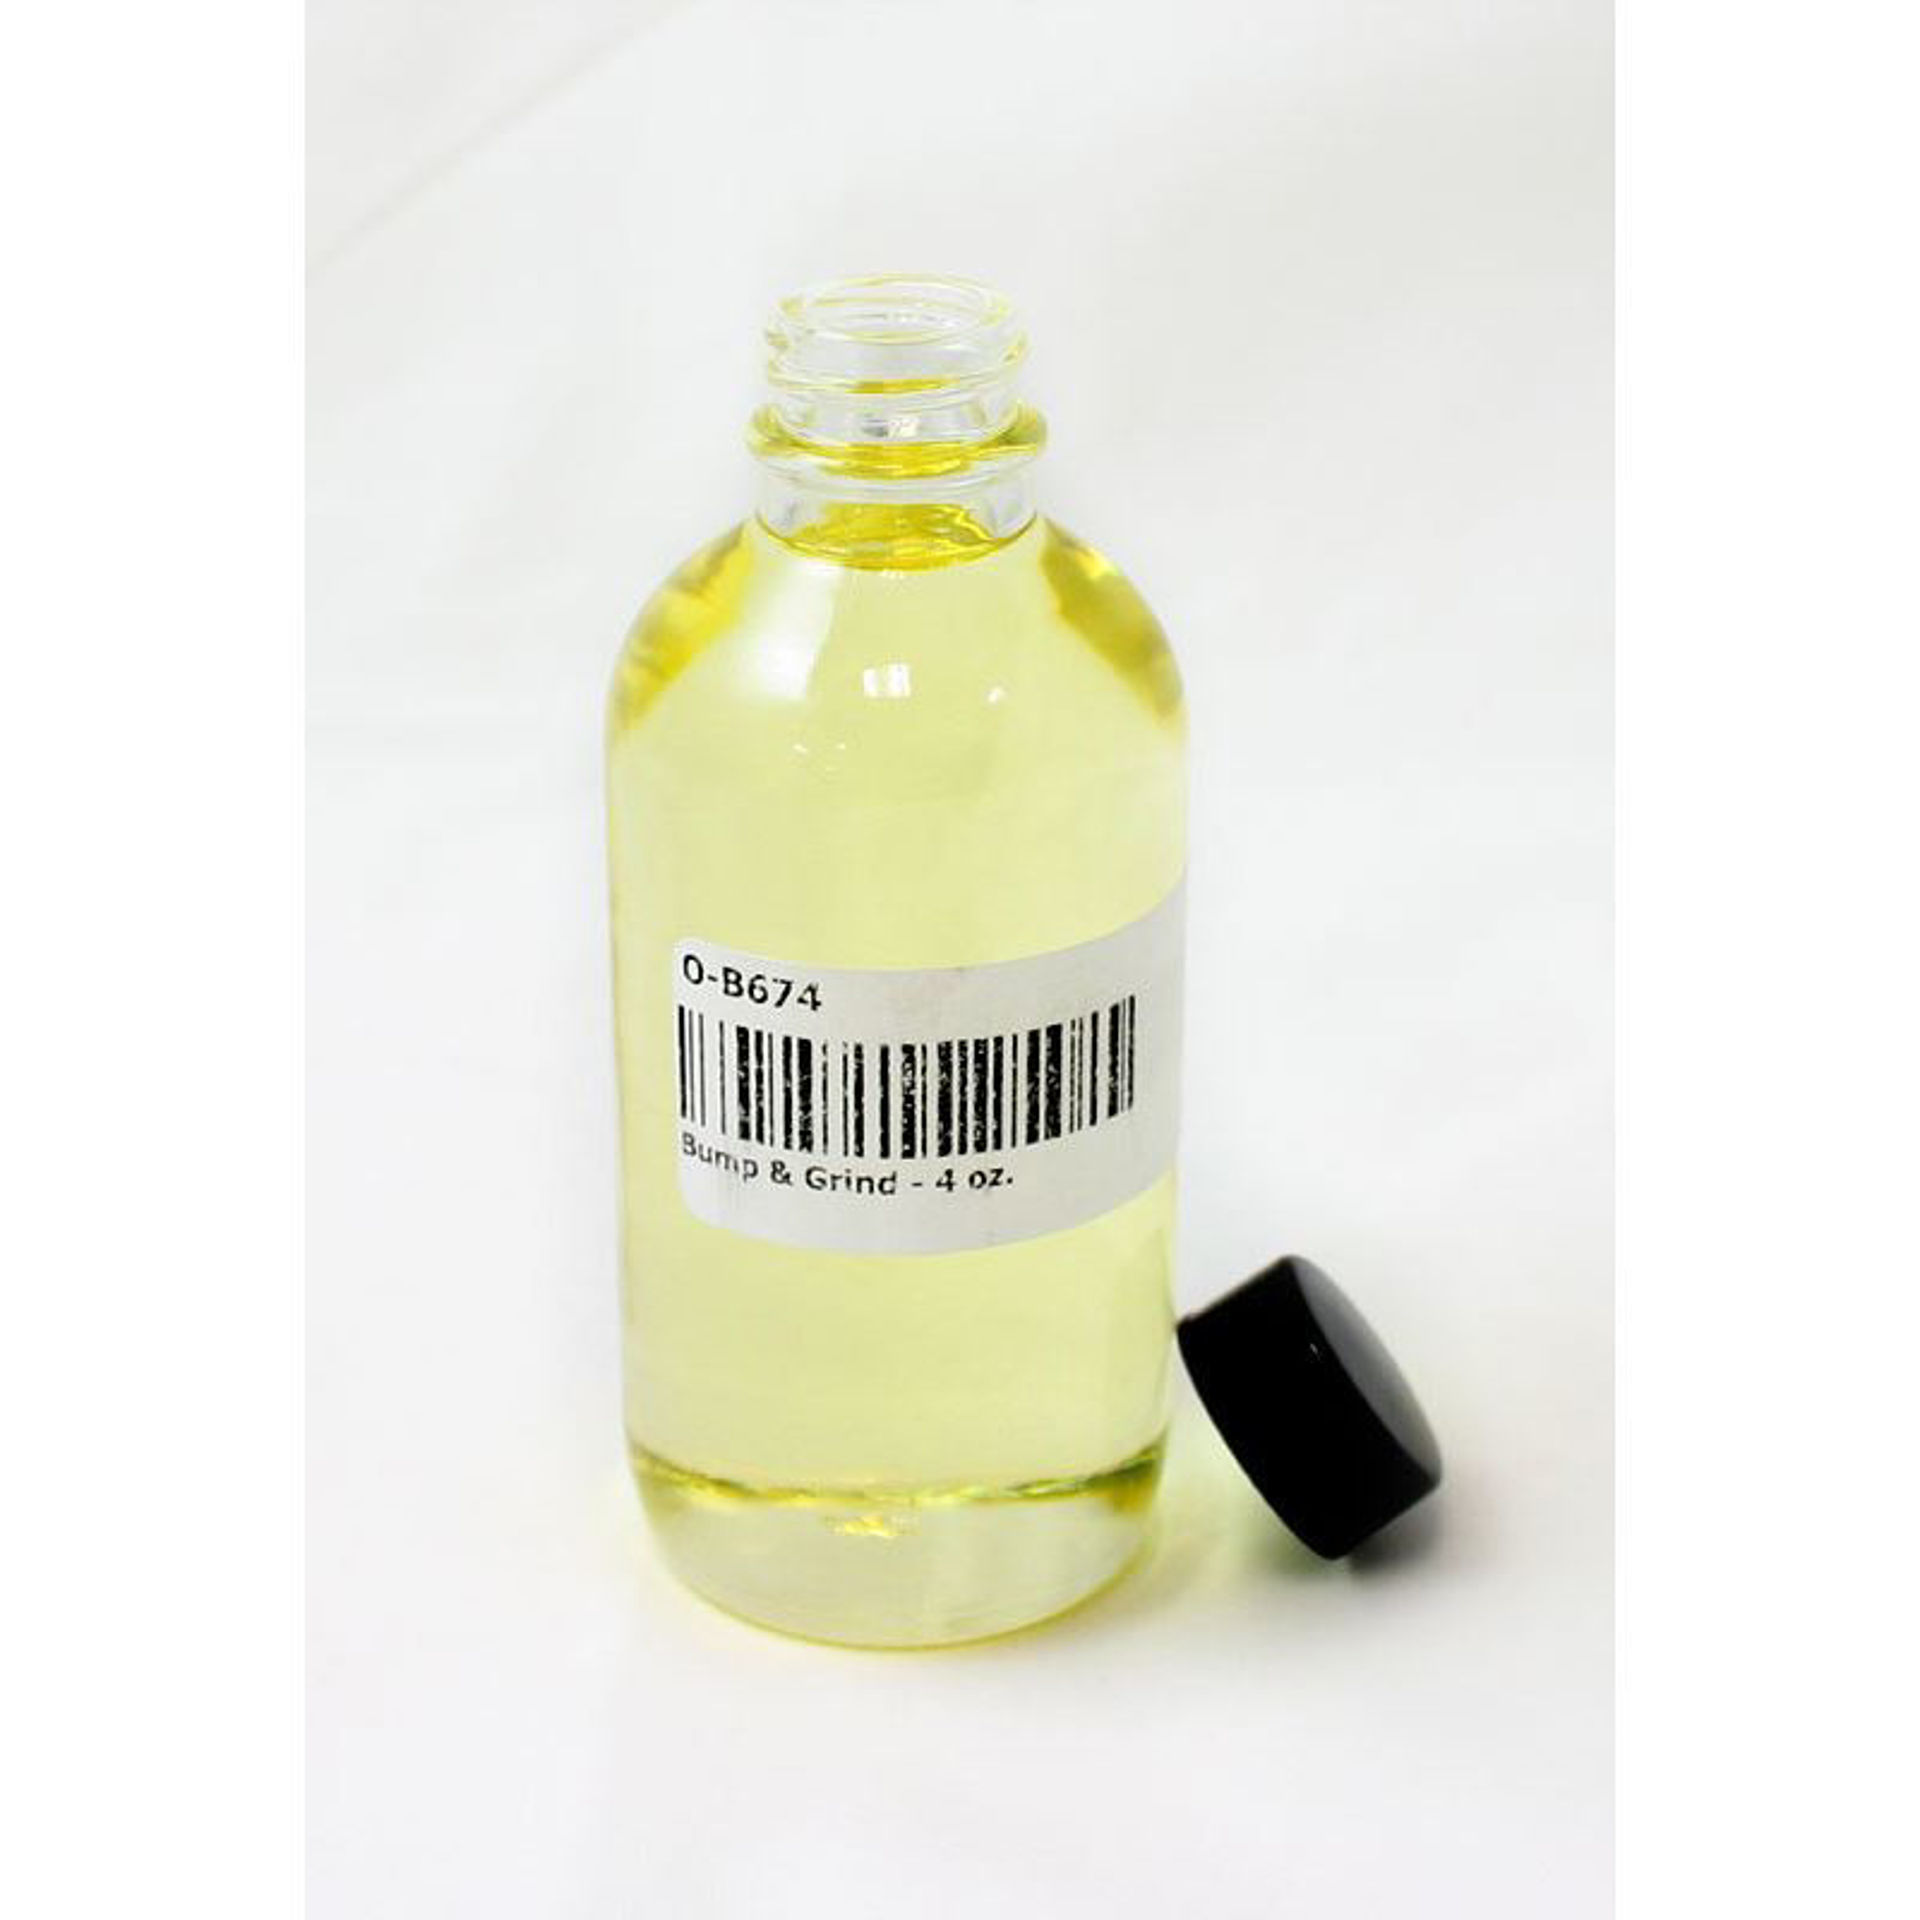 Picture of Bump & Grind - 4 oz.